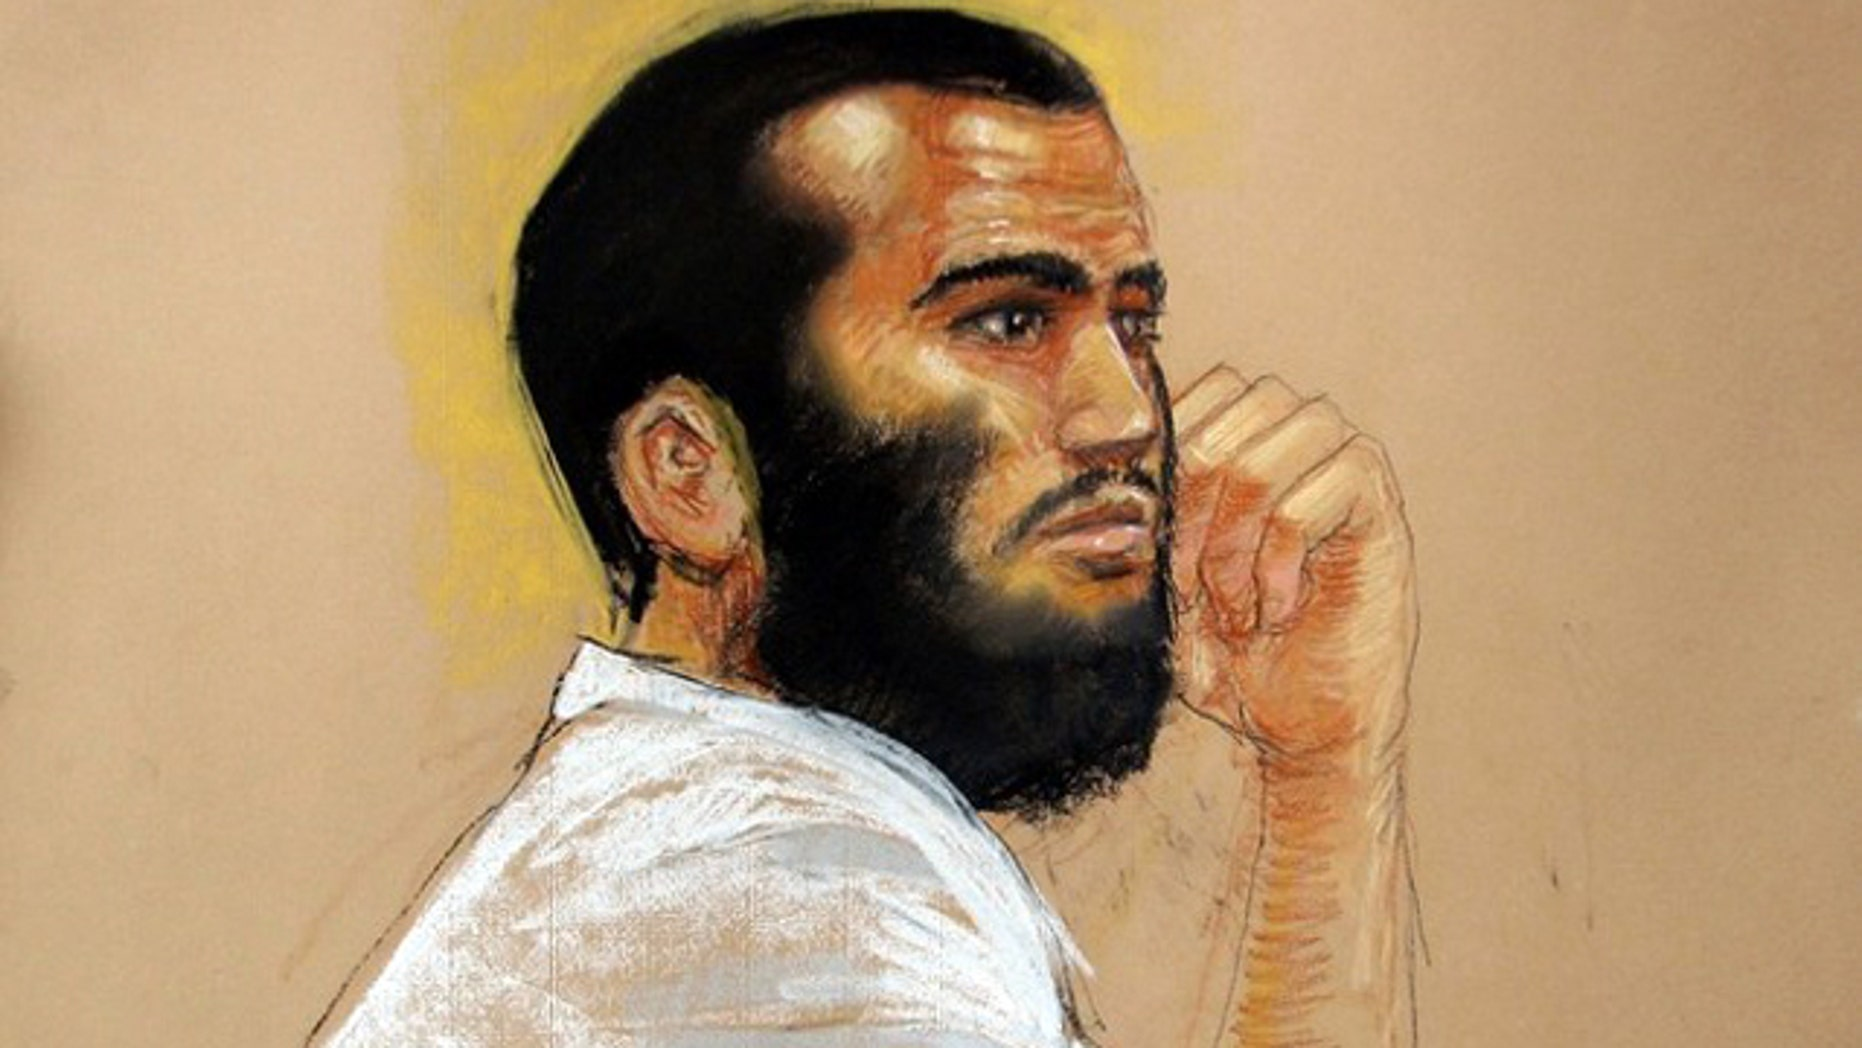 April 28, 2010: Sketch by courtroom artist Janet Hamlin shows Canadian defendant Omar Khadr attends a hearing in the courthouse for the U.S. military war crimes commission at the Camp Justice compound on Guantanamo Bay U.S. Naval Base in Cuba.